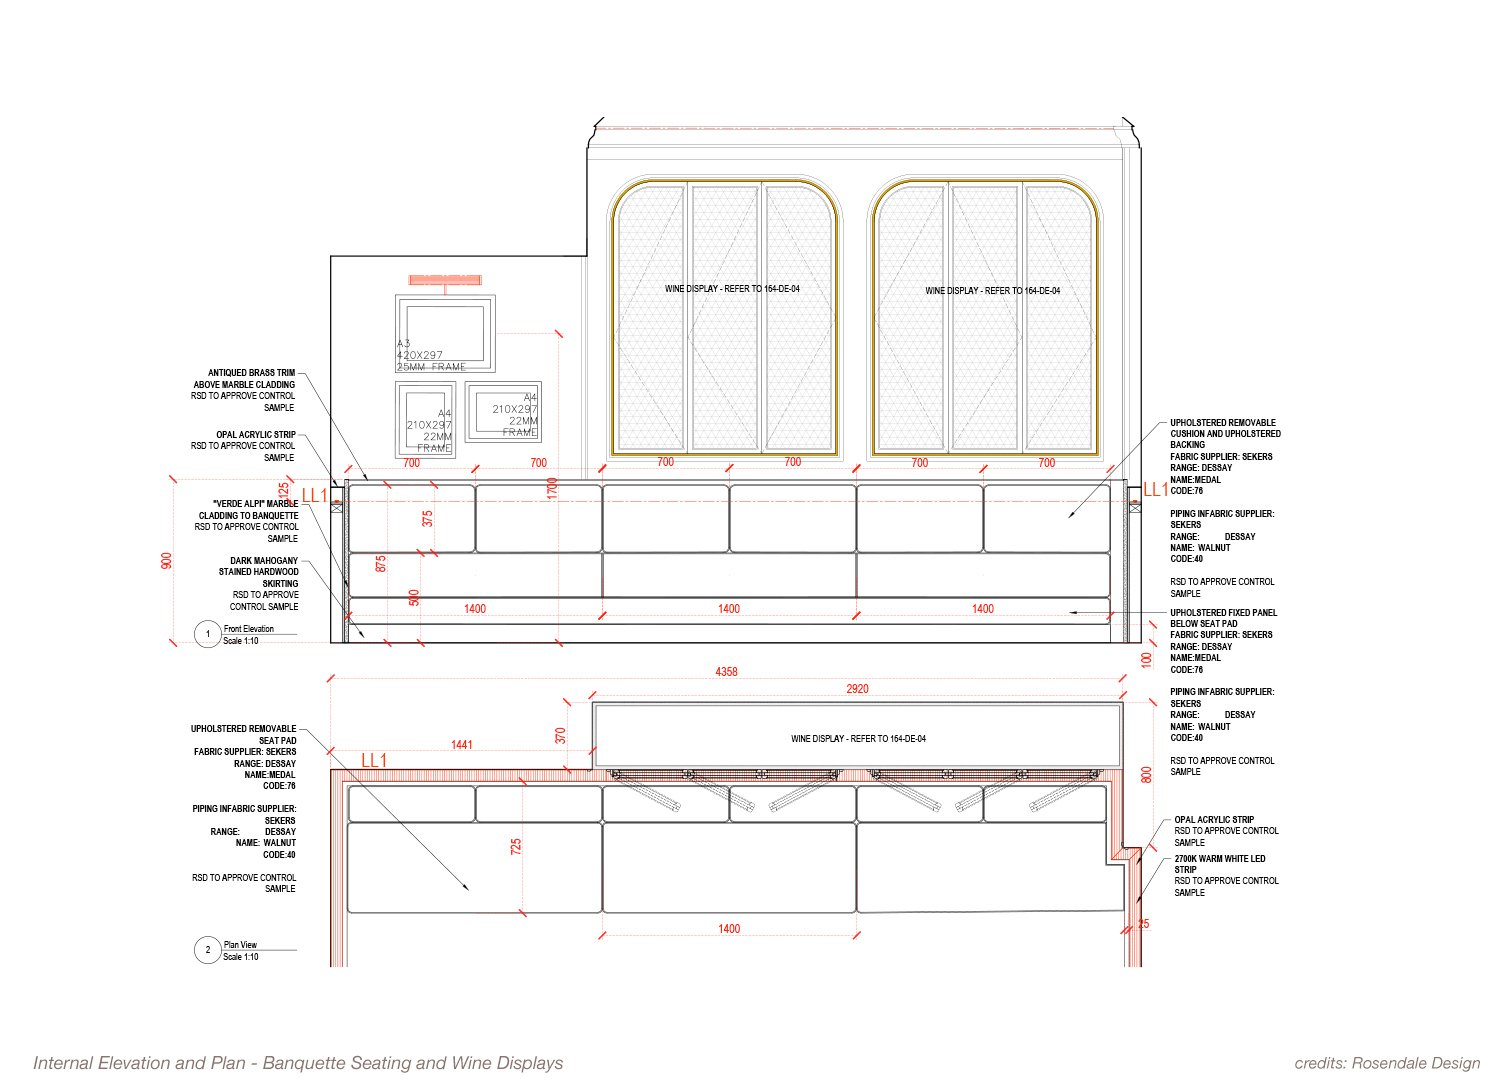 Internal Elevation and Plans - Banquette Seating and Wine Displays Rosendale Design}